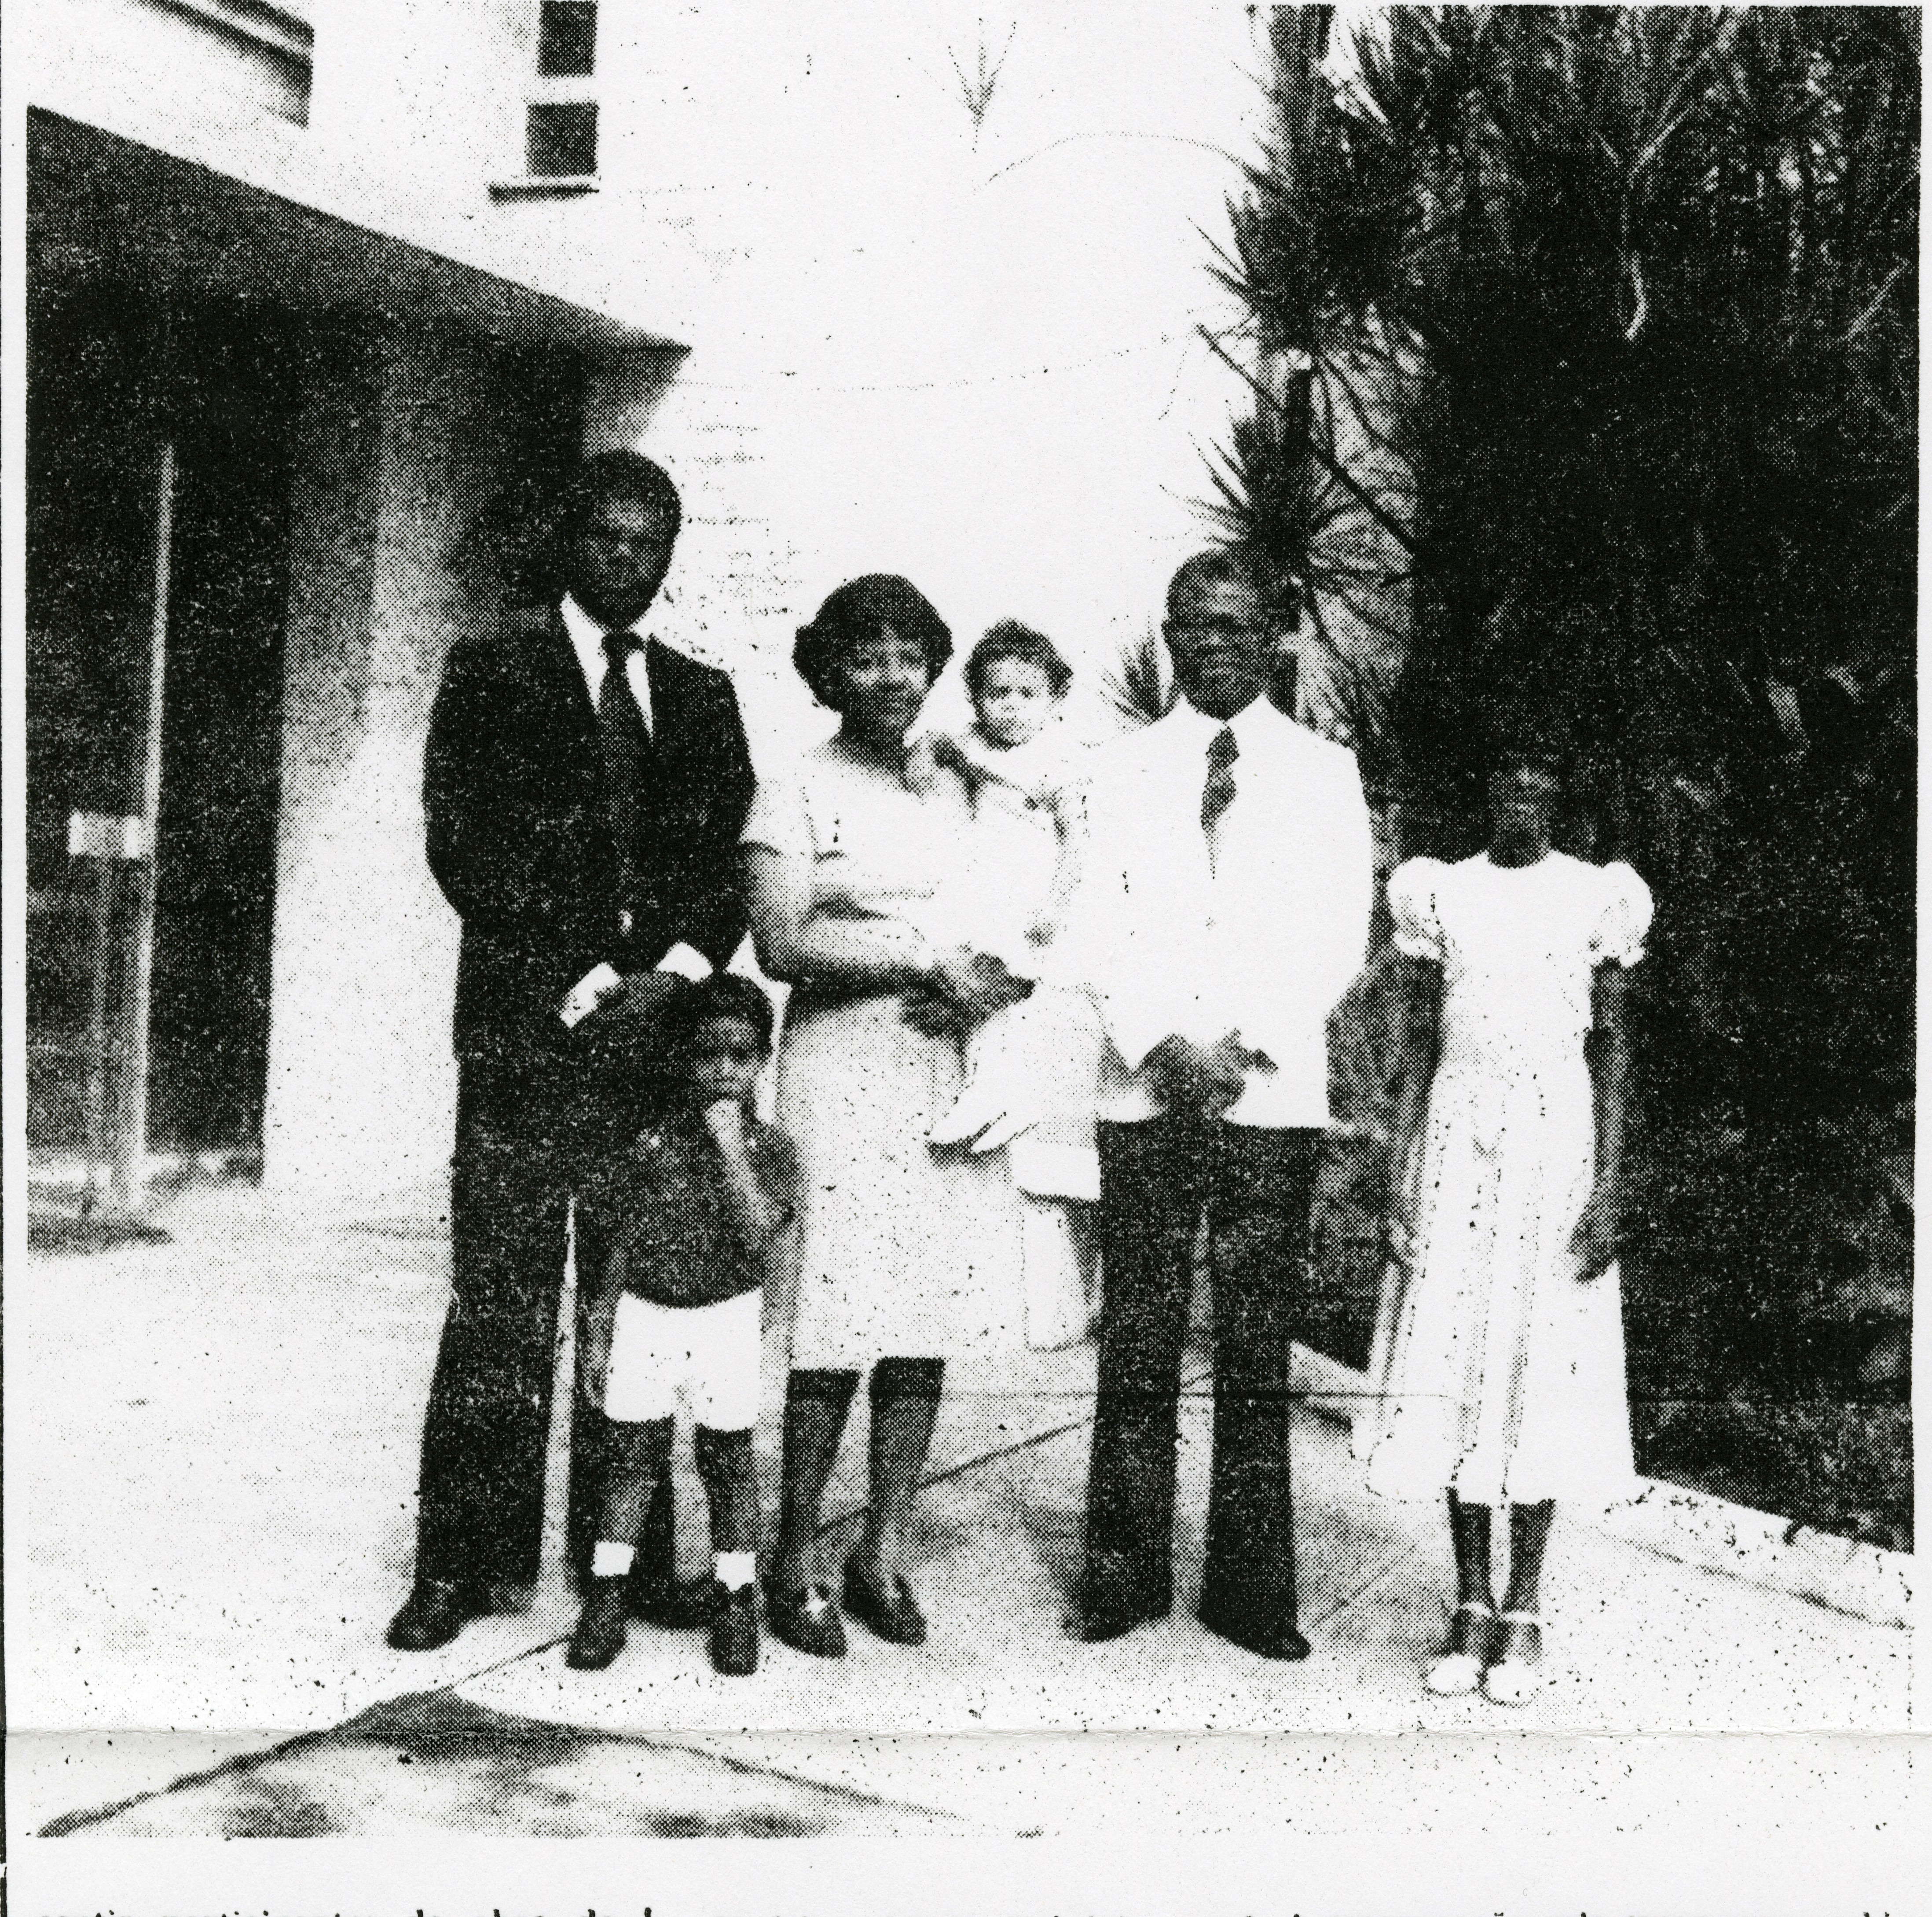 Helvécio Martins and his wife, Rudá Martins, and their family.